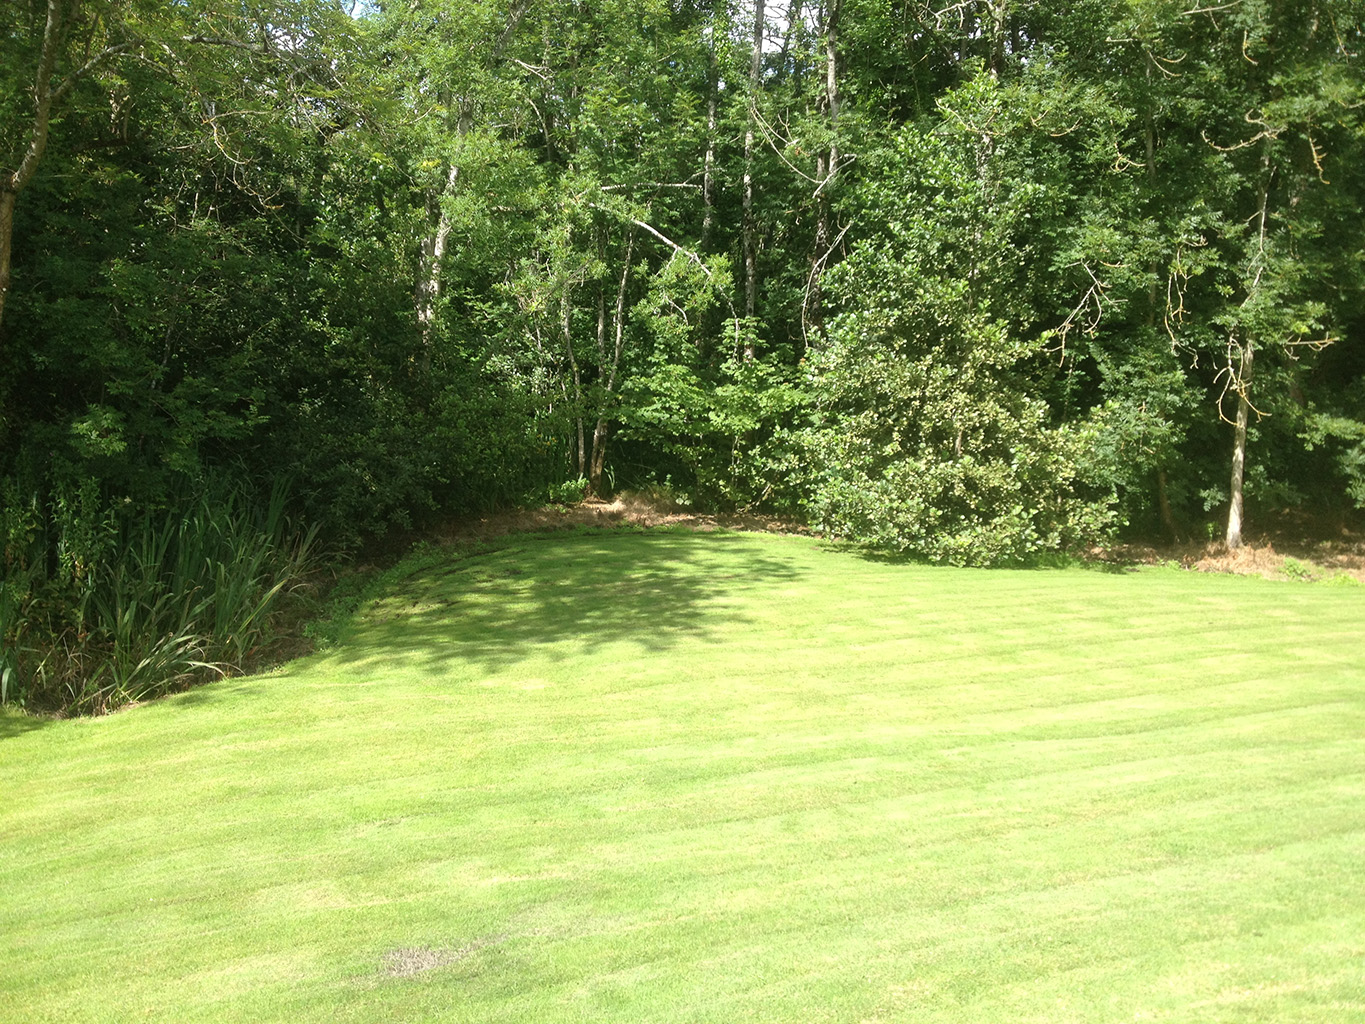 Landscaping Grass Roll : Roll out grass m?che?l quinn landscaping